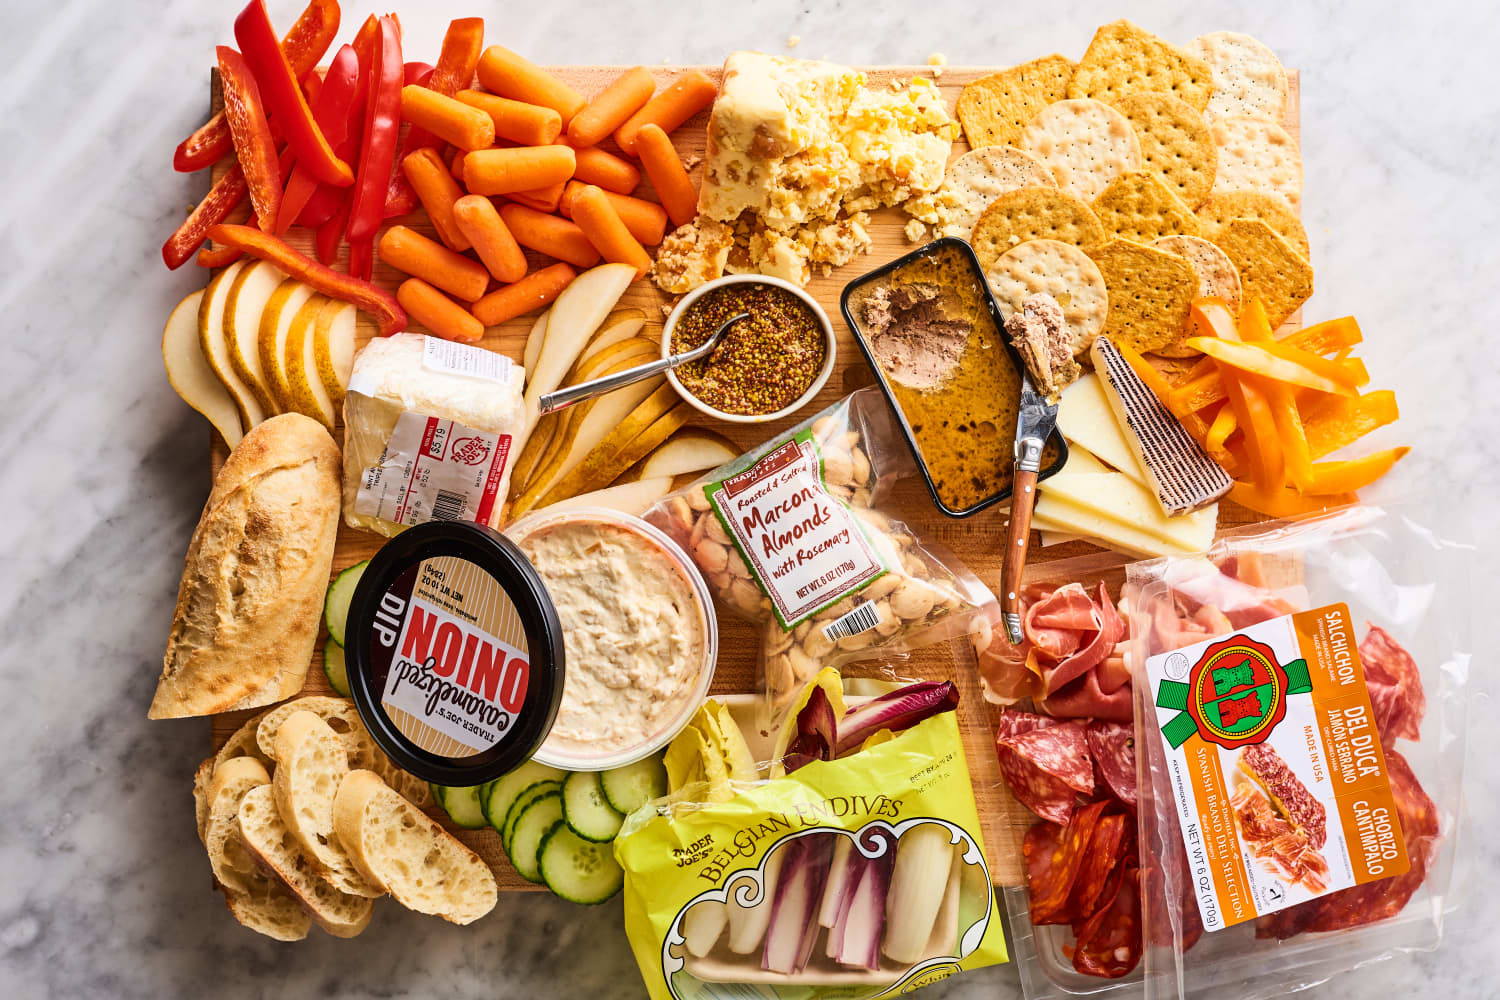 This Overflowing Trader Joe's Charcuterie Board Cost Us Just $6.30 per Person